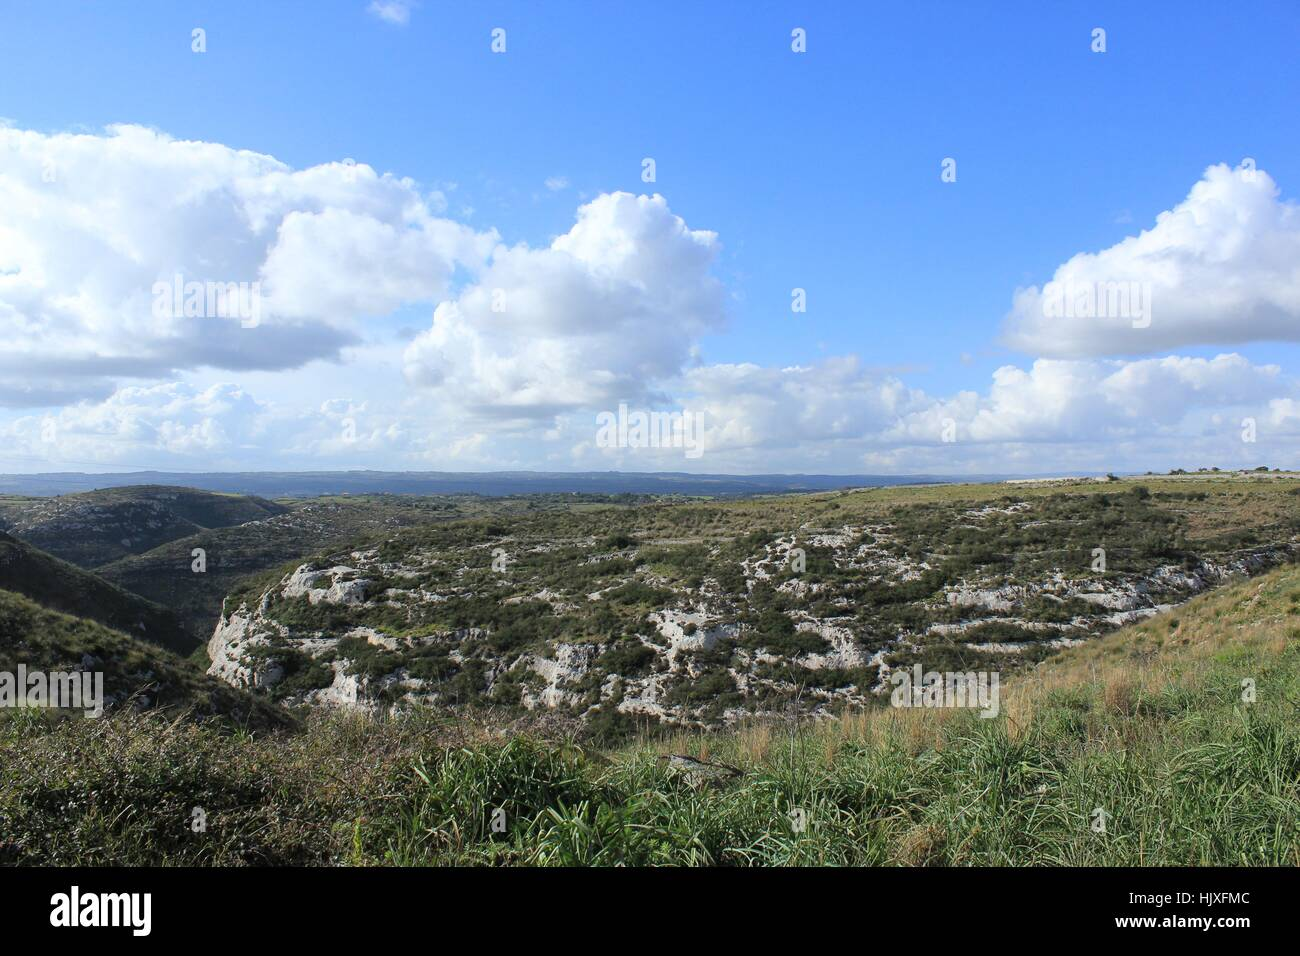 Cumulonimbus clouds float in a blue sky over the rolling hills of Sicily. - Stock Image